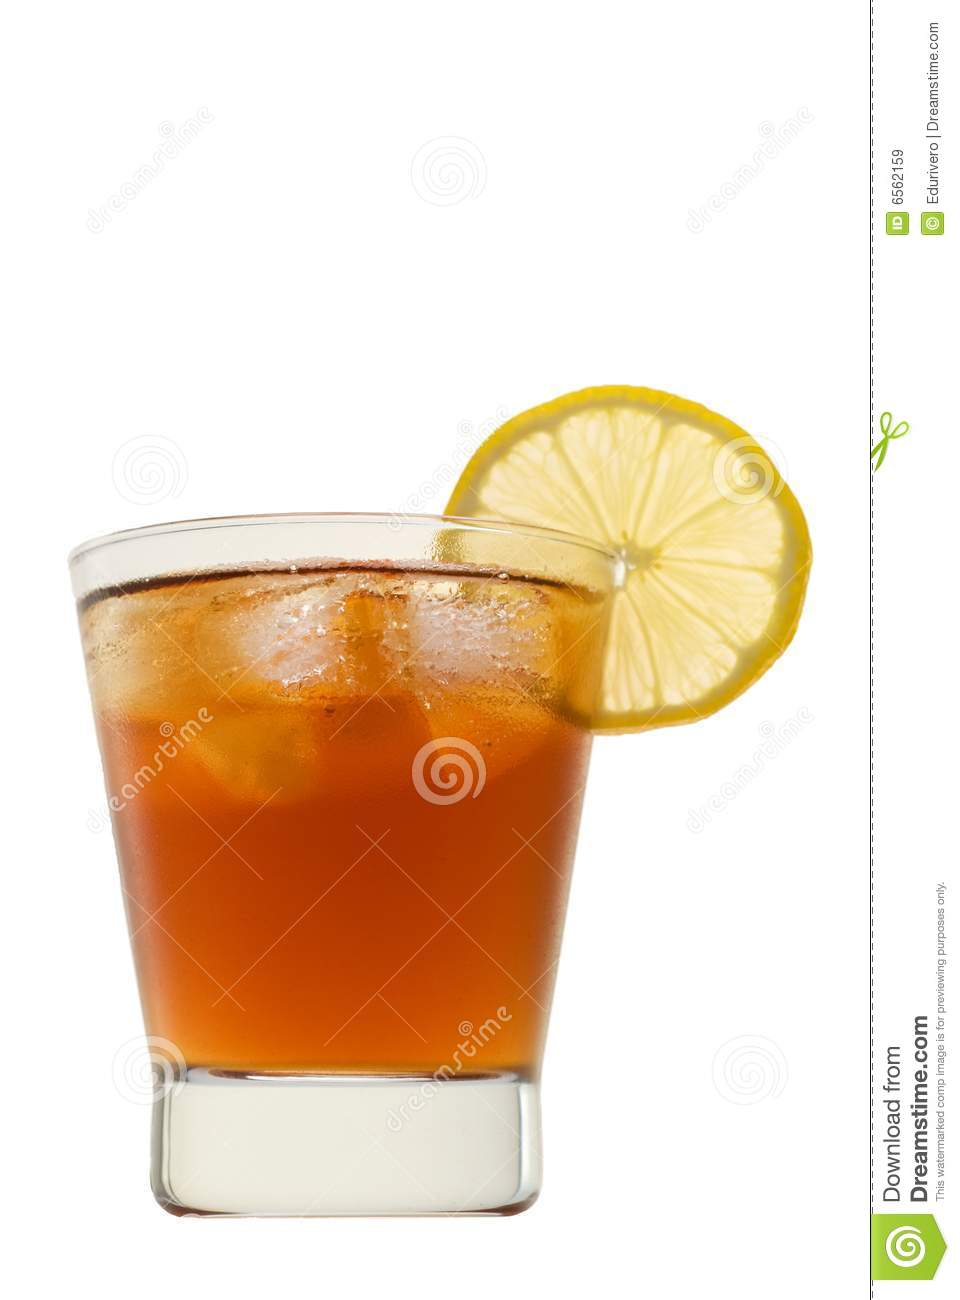 Soft drink with lemon isolated